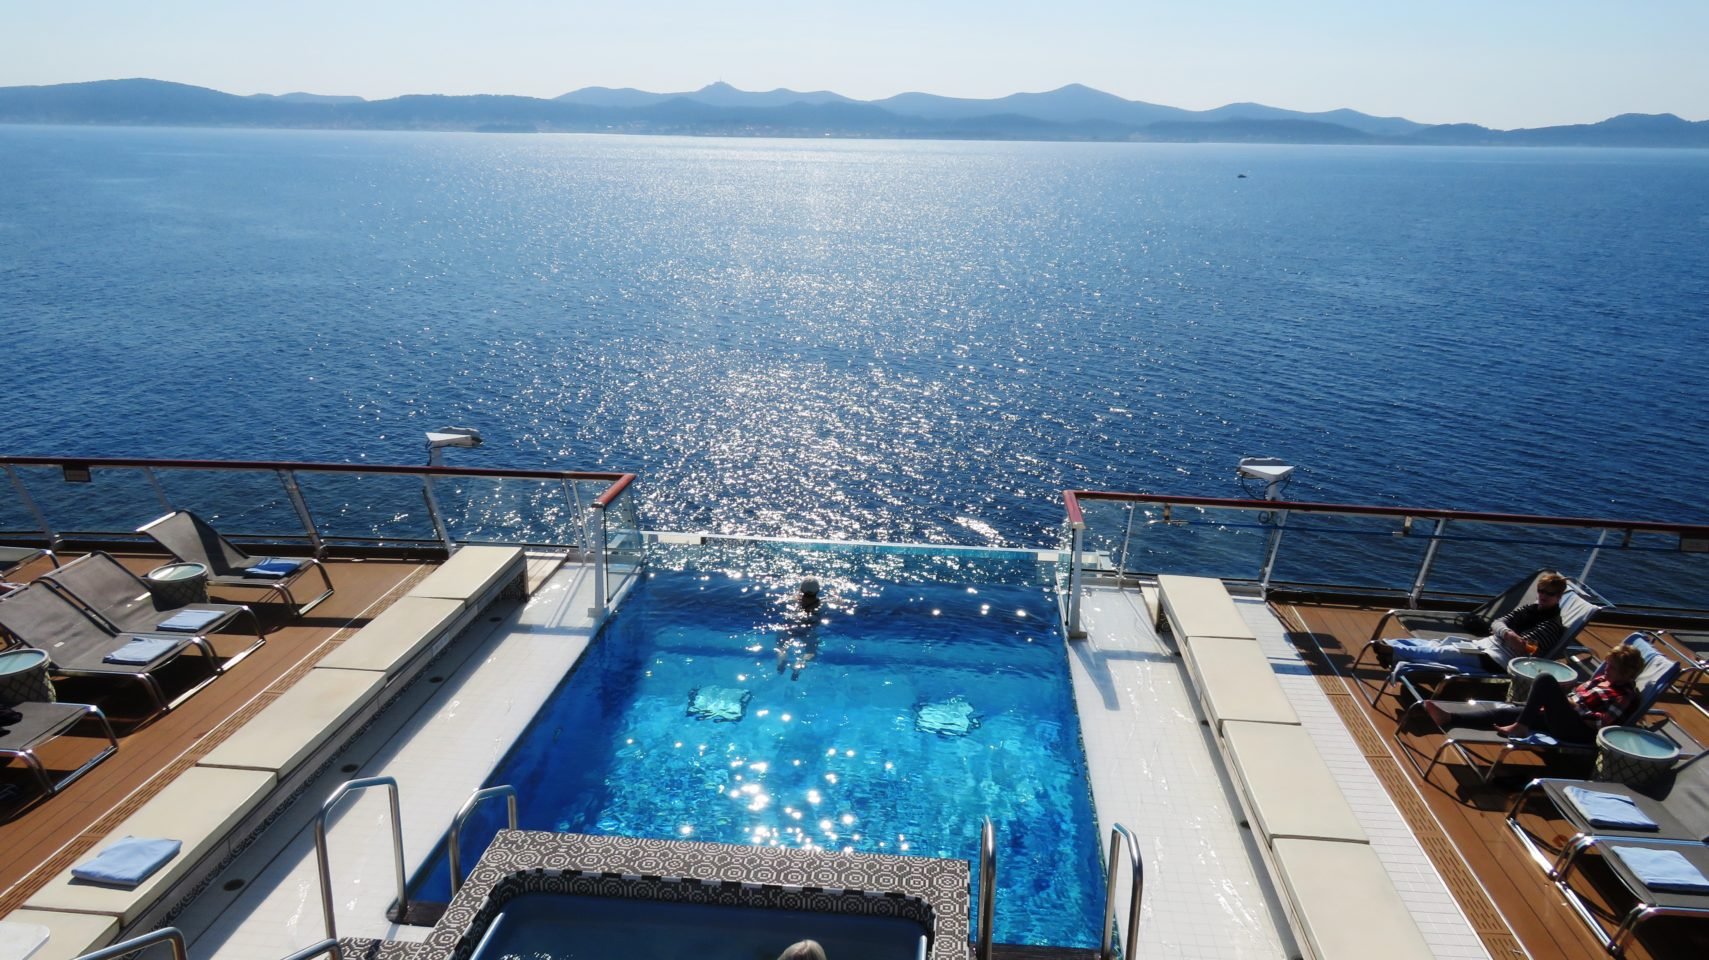 <em><strong>Viking Ocean Cruise Ships ~</strong> </em> Infinity Pool area on the Viking Star